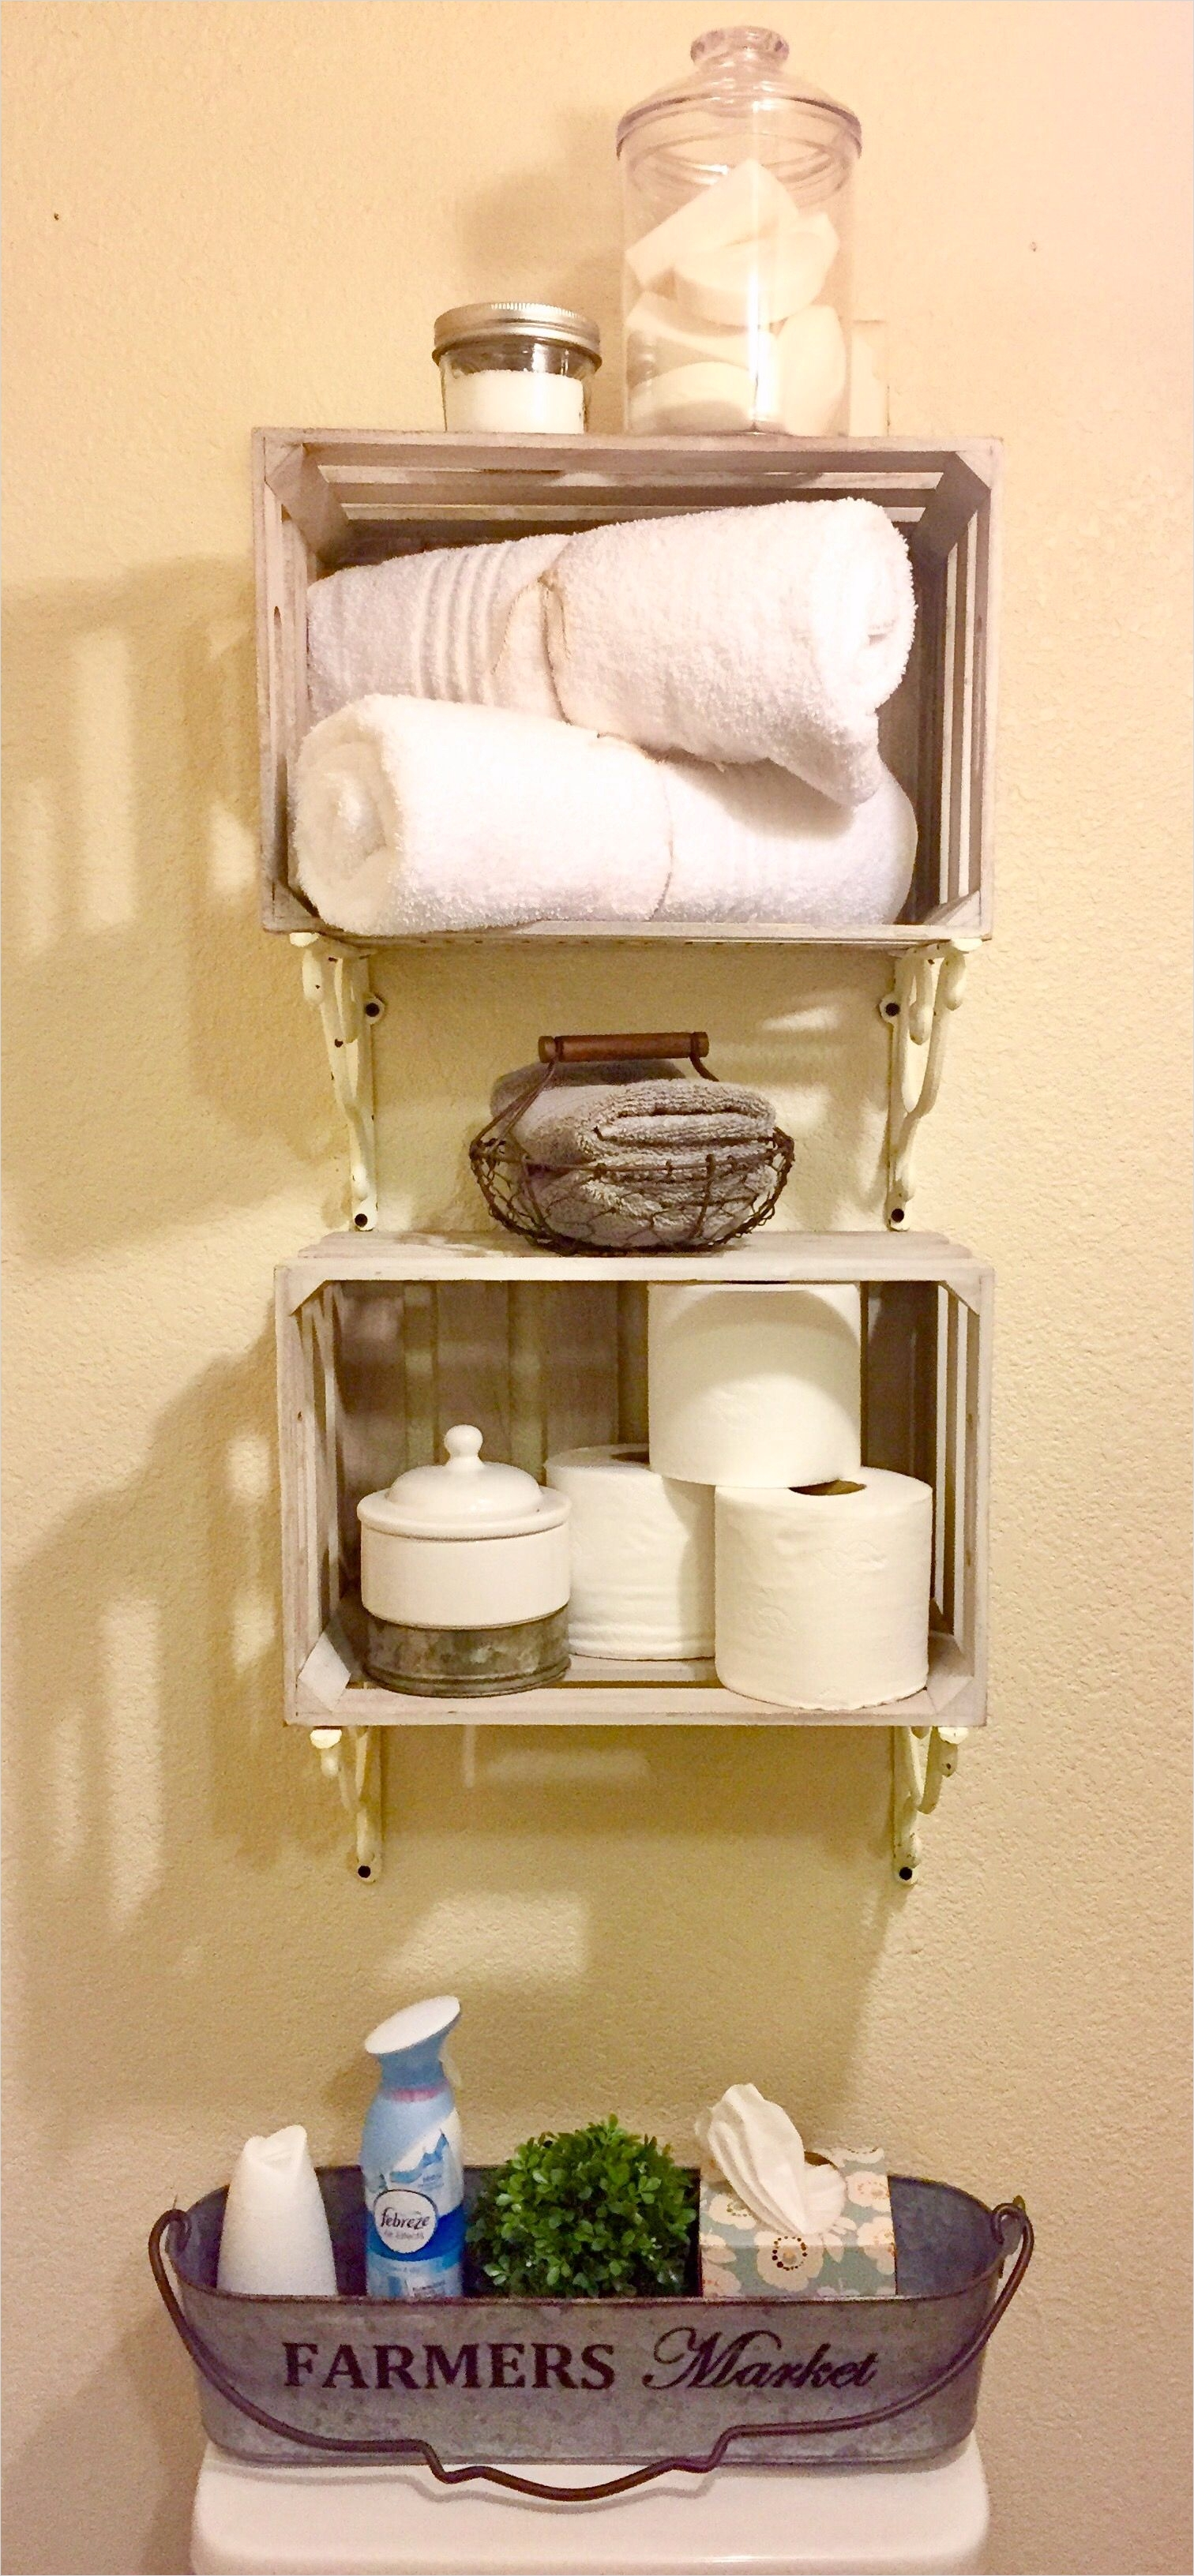 40 Stunning French Country Small Bathroom 26 French Country Farmhouse Bathroom Storage Shelves & Decor Rustic Home Decor 7